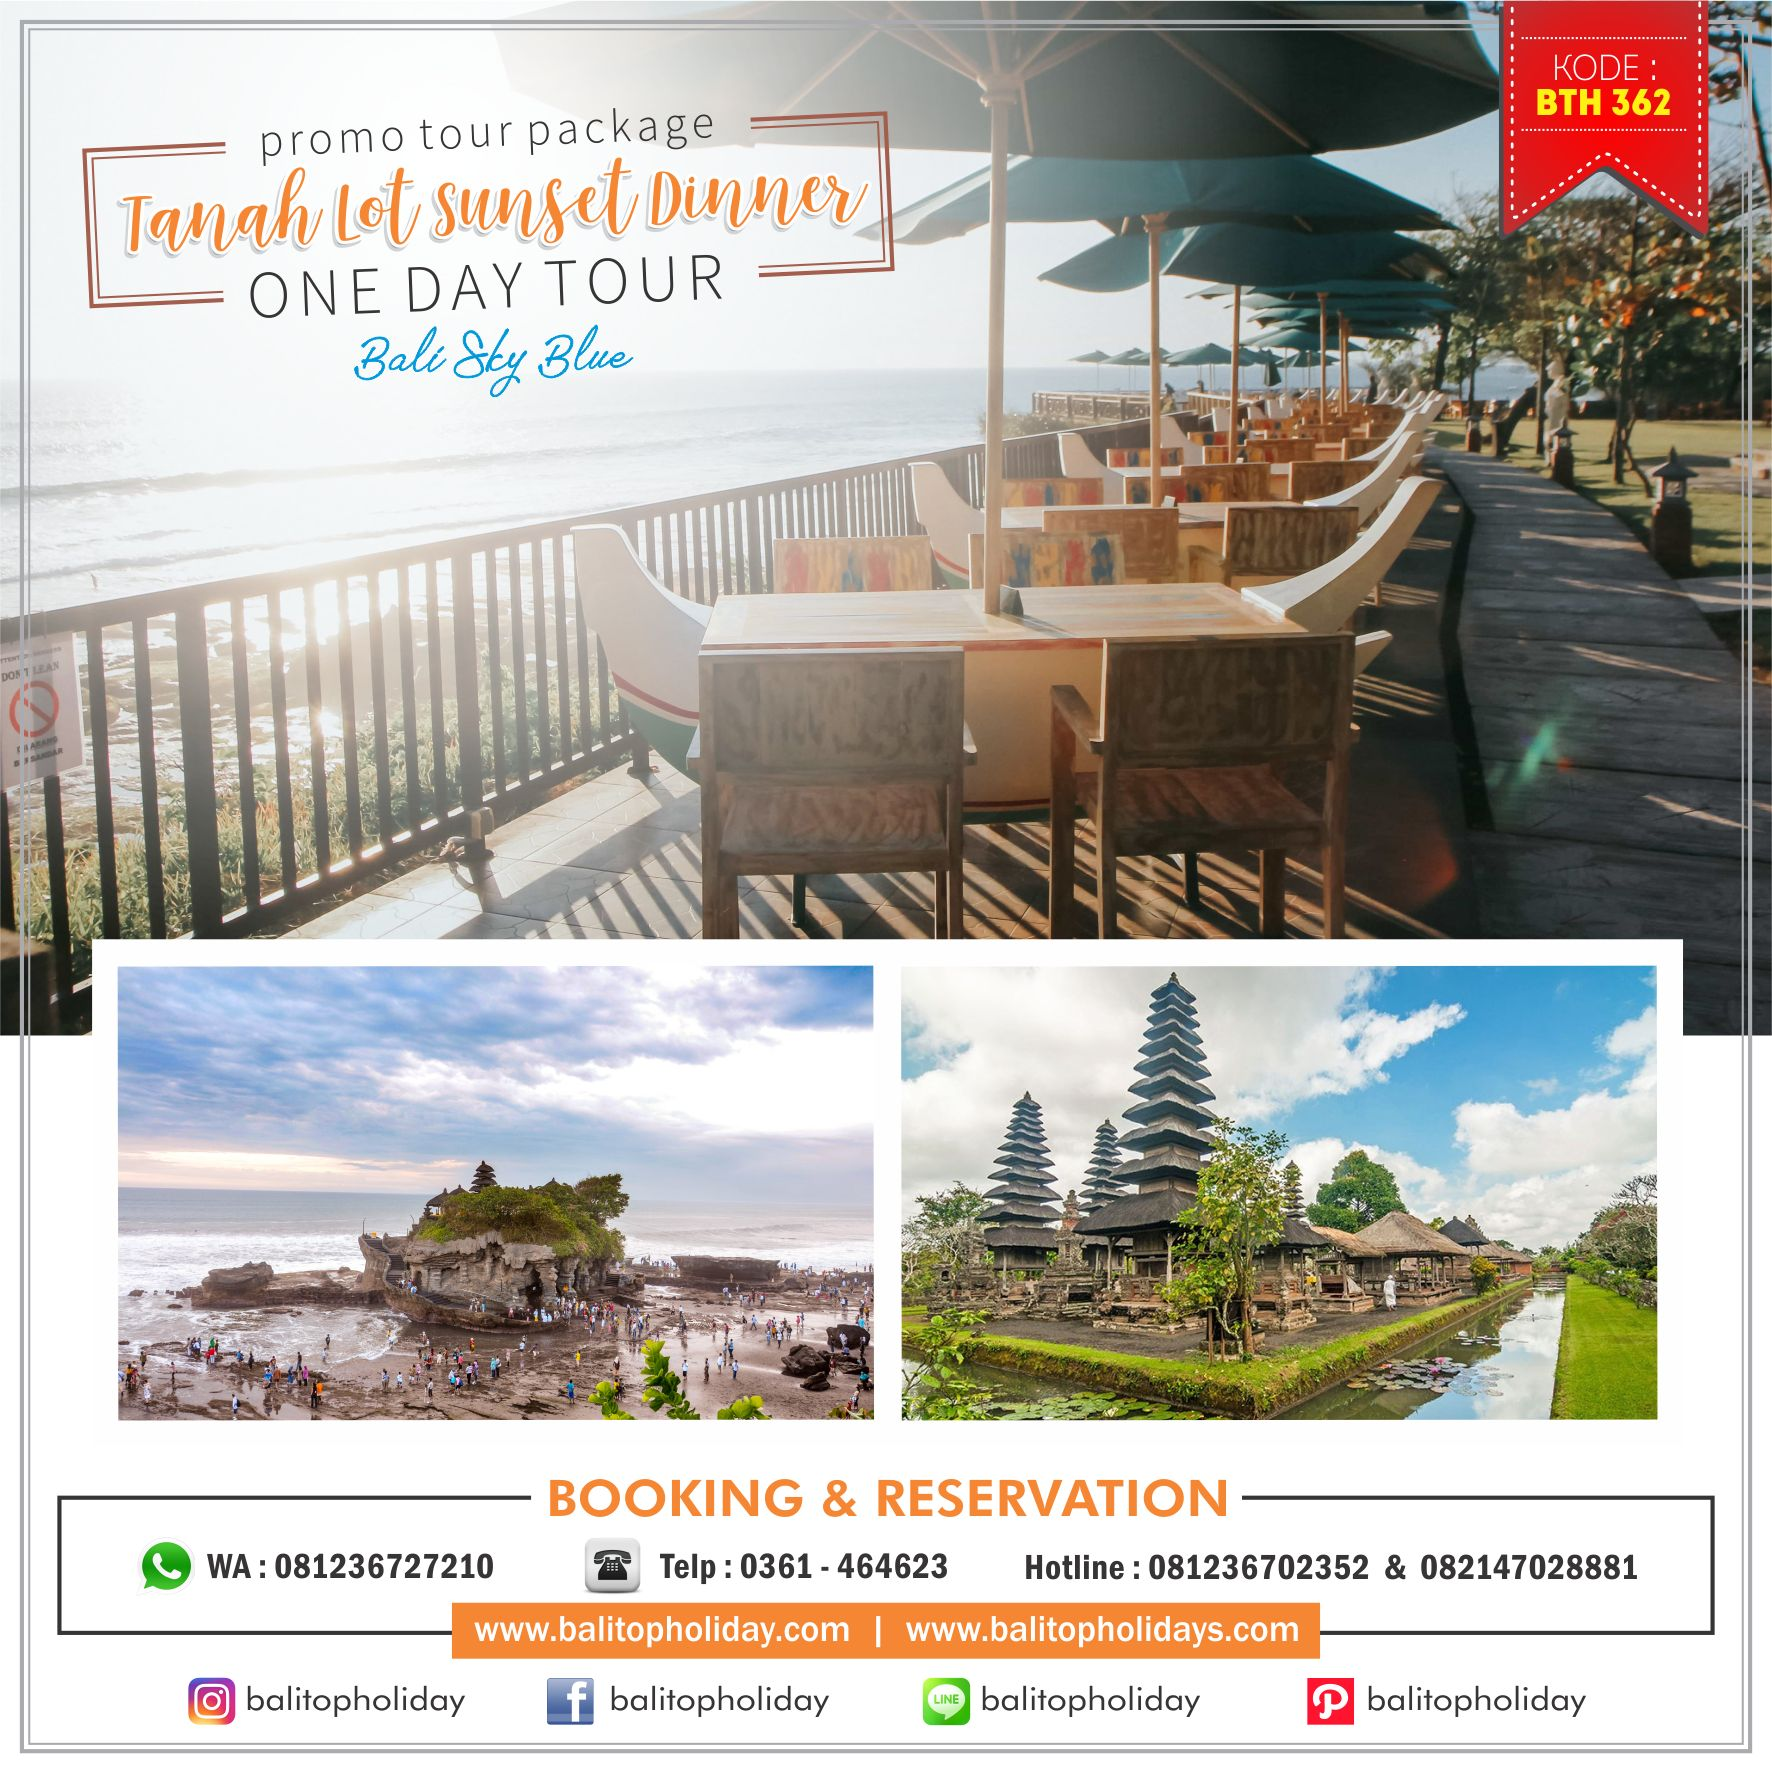 Tanah Lot Sunset Dinner One Day Tour BTH 362